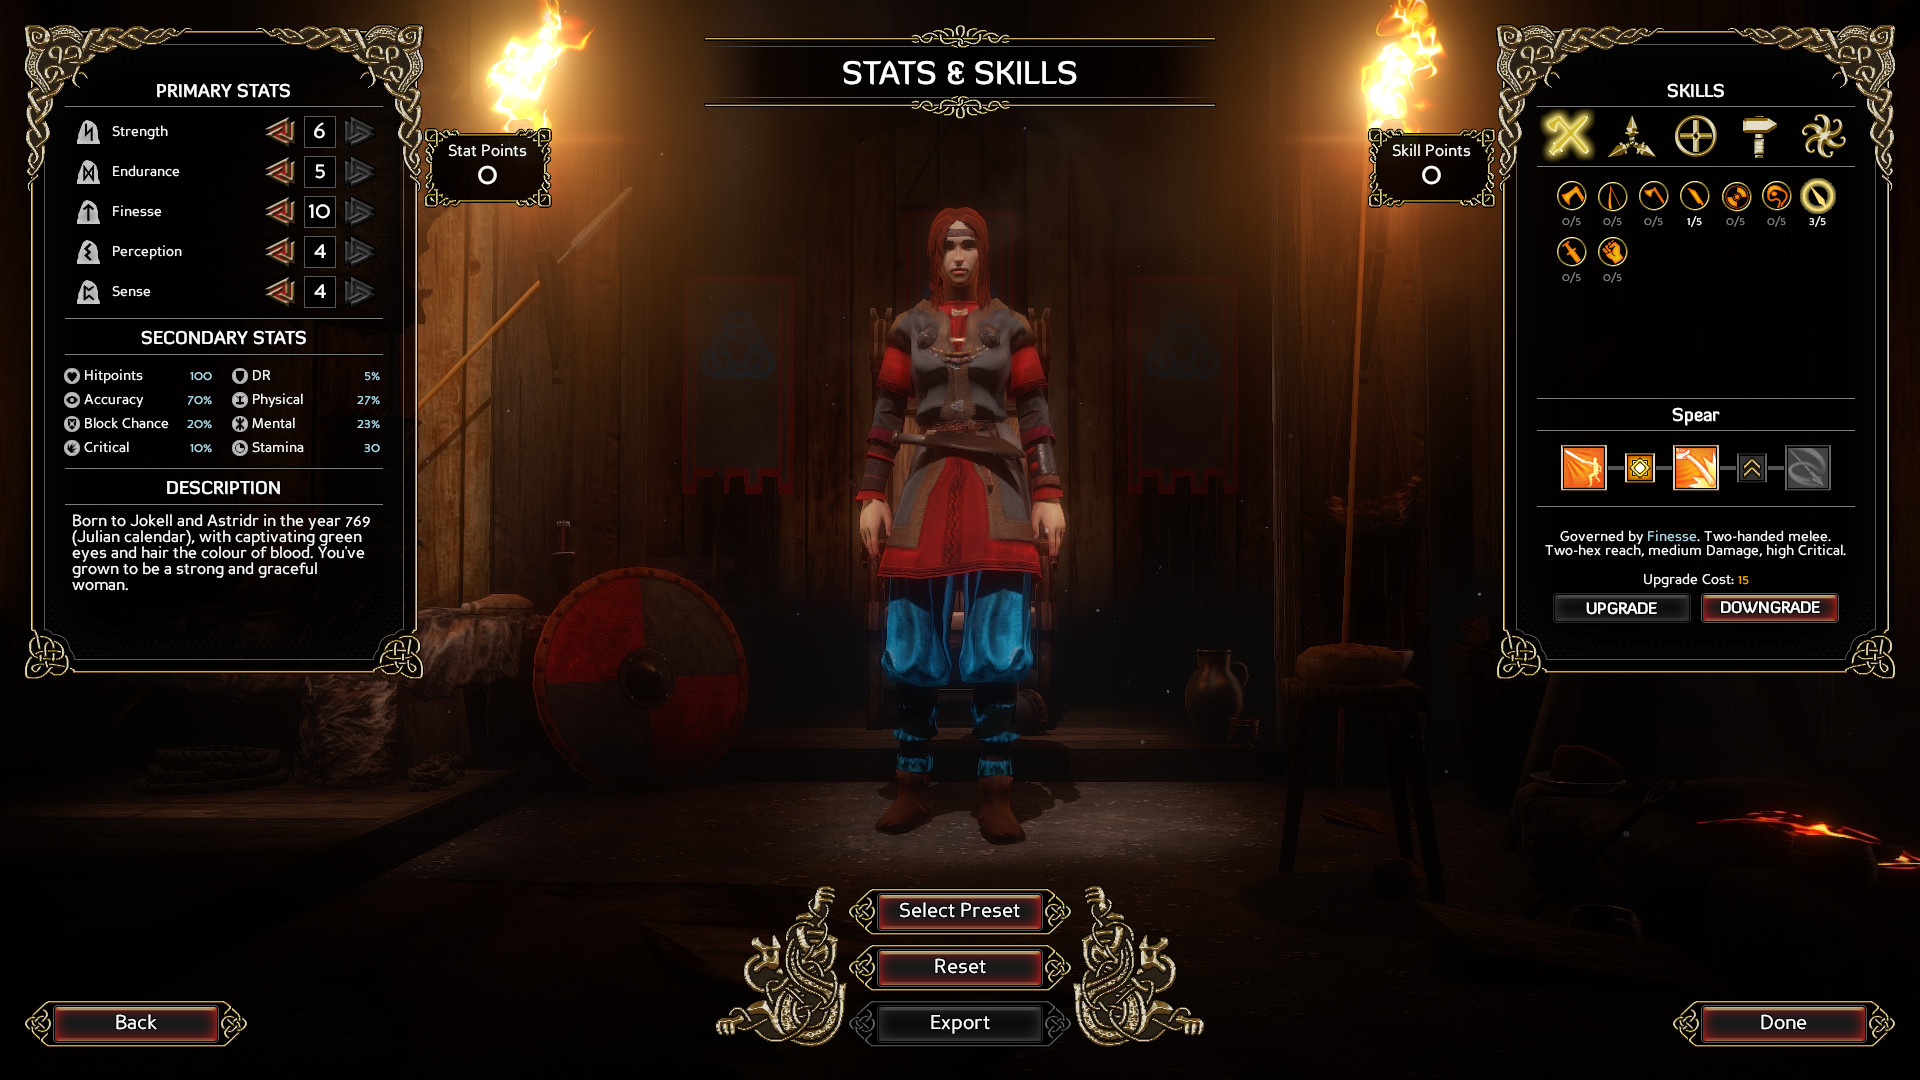 A gender ambiguous character stands inside with torches burning on either side of them. They are surrounded by character creation menus allowing a player to adjust 'Stats and Skills'. Primary stats include Strength, Endurance, Finesse, Perception, and Sense, and secondary stats include Hitpoints, DR, Accuracy, Physical, Block chance, Mental, Critical and Stamina. The description states 'Born to Jokell and Astridr in the year 769 (Julian calendar), with captivating green eyes and hair the colour of blood. You've grown to be a strong and graceful woman.